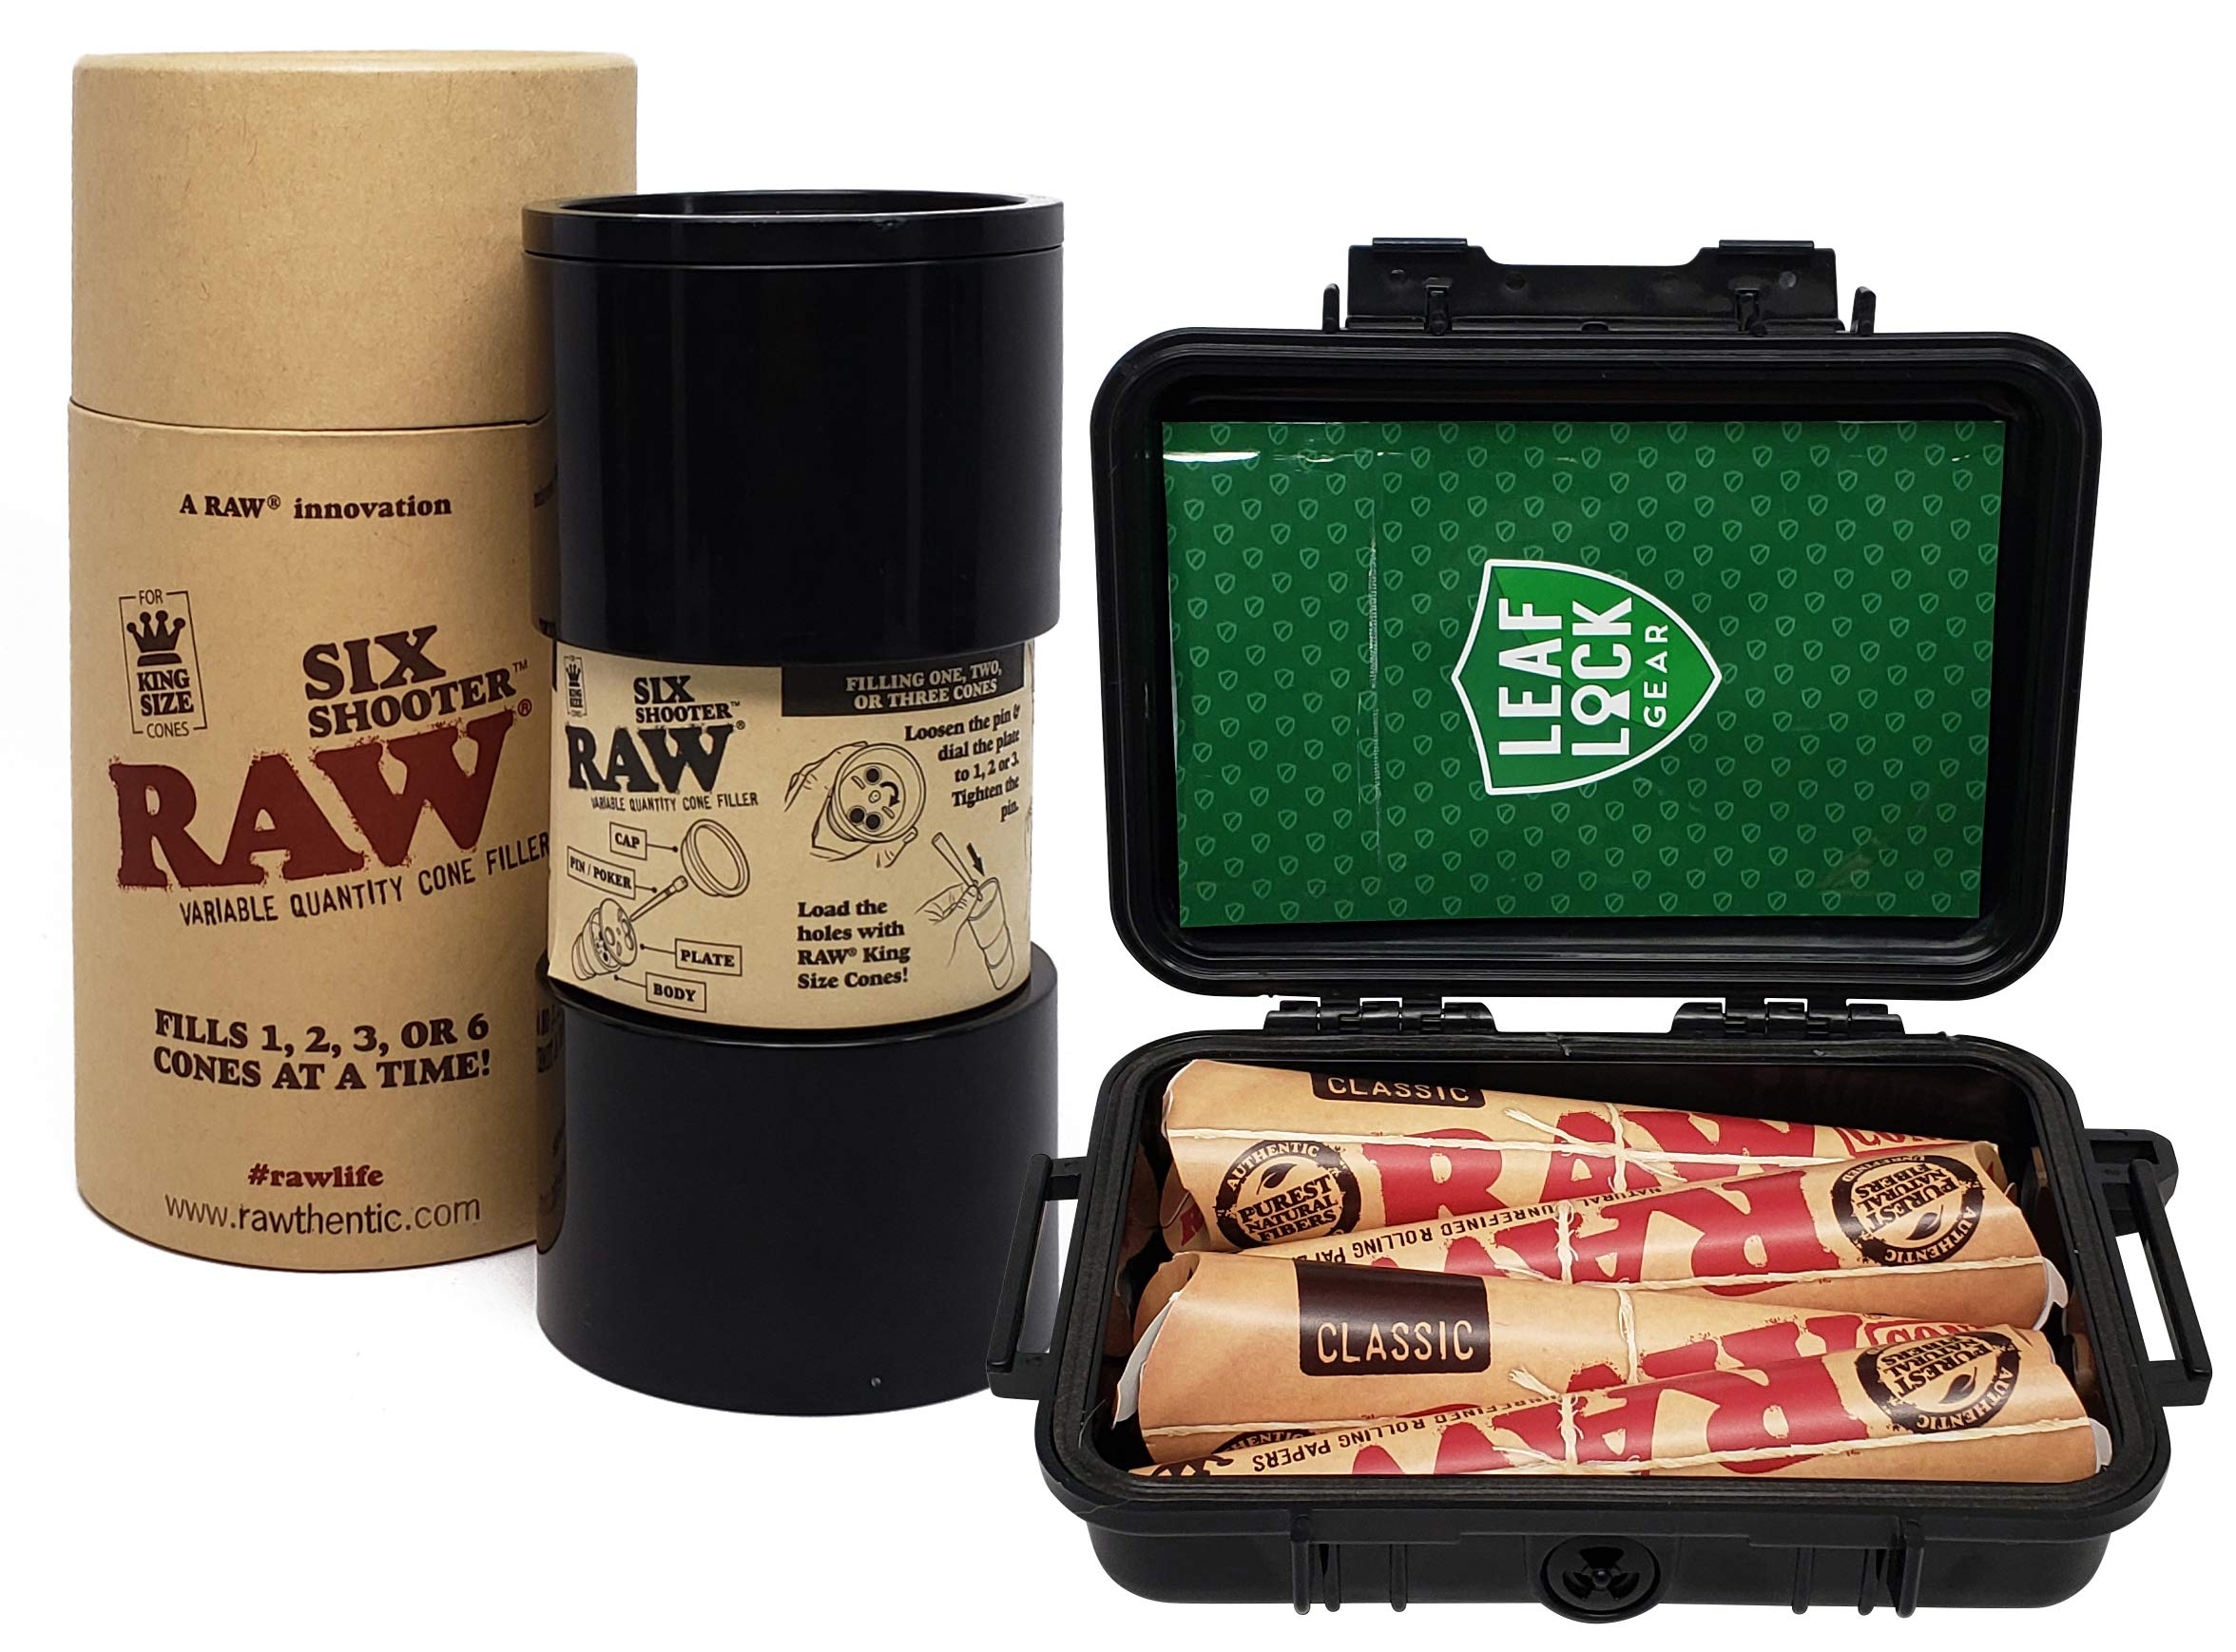 RAW Six Shooter Cone Filler with RAW Classic King Size Cones (4 Packs) Leaf Lock Gear Travel Case and Leaf Lock Gear Smell Proof Pouch